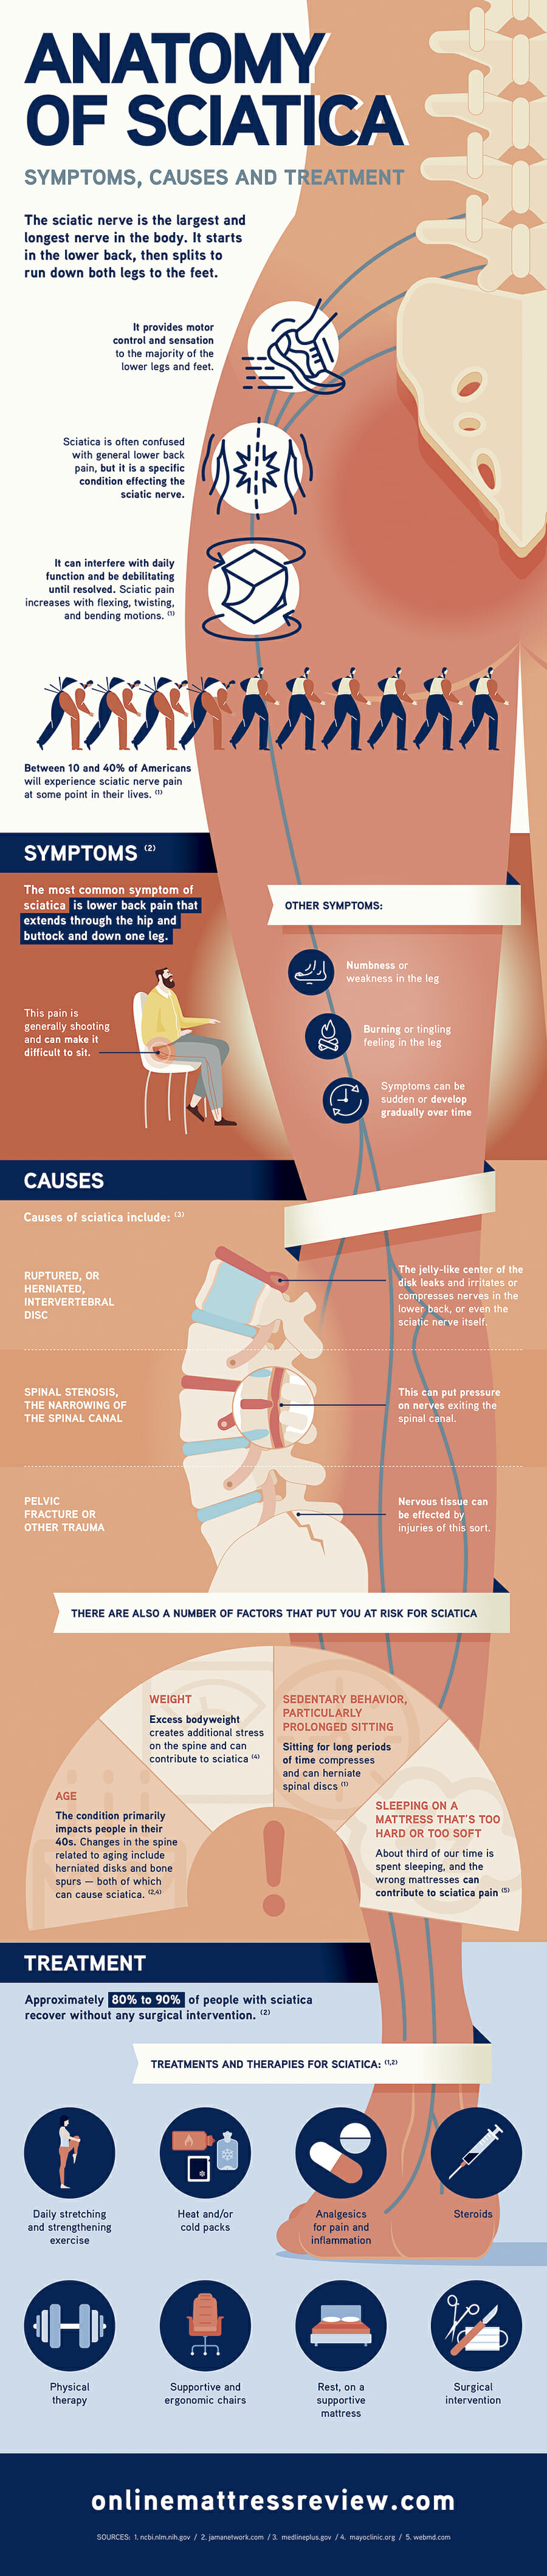 Anatomy of Sciatica